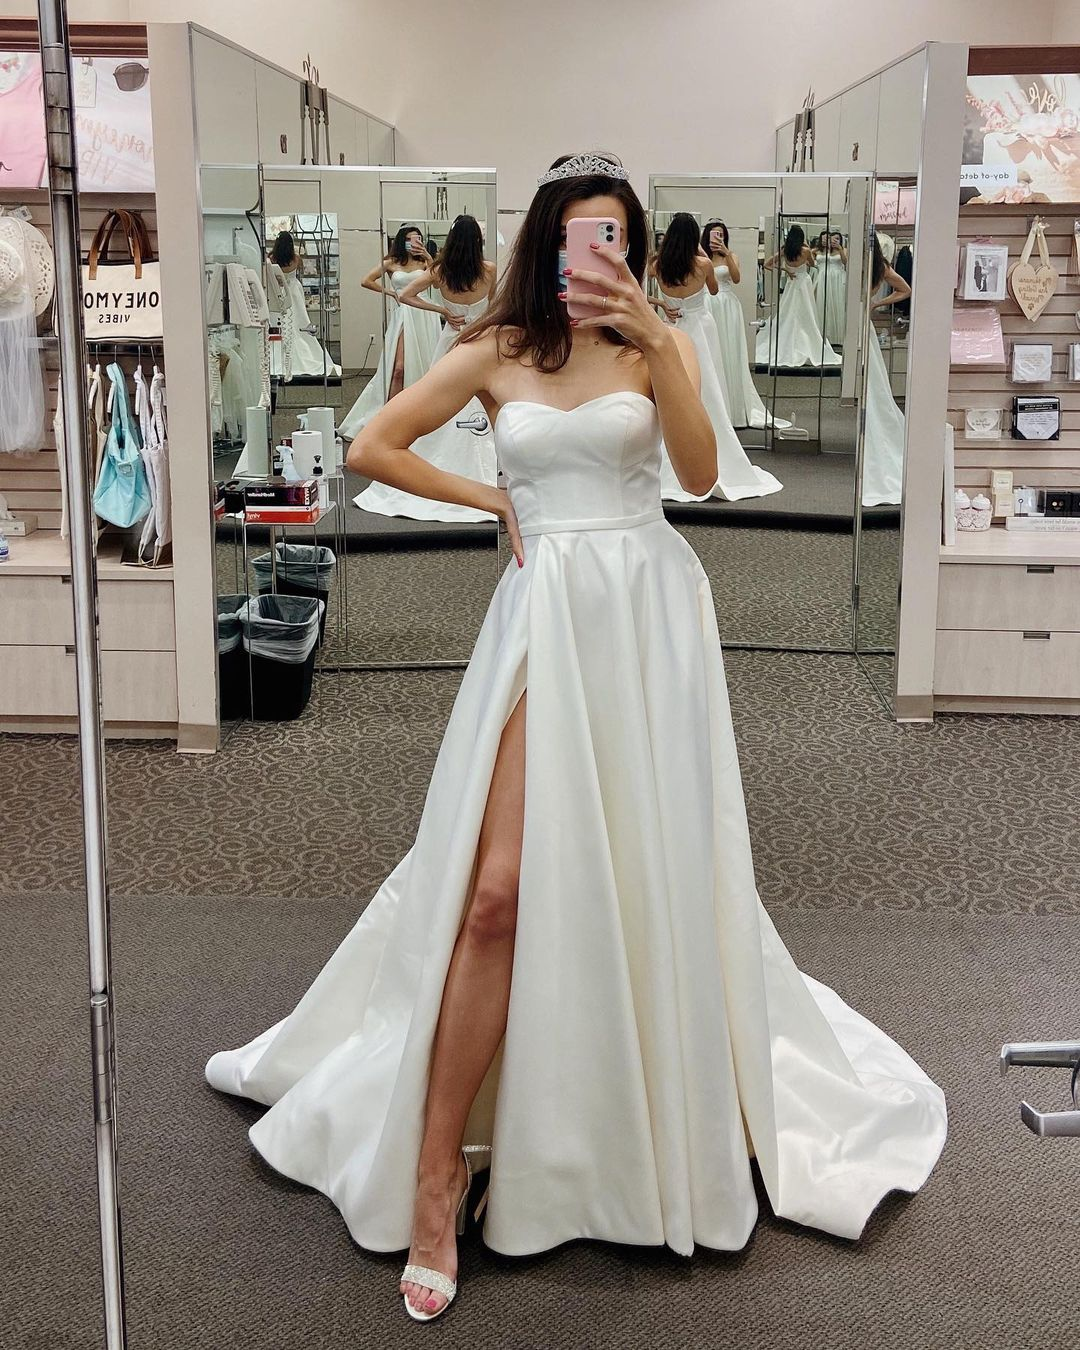 Bride Babe in store takeover